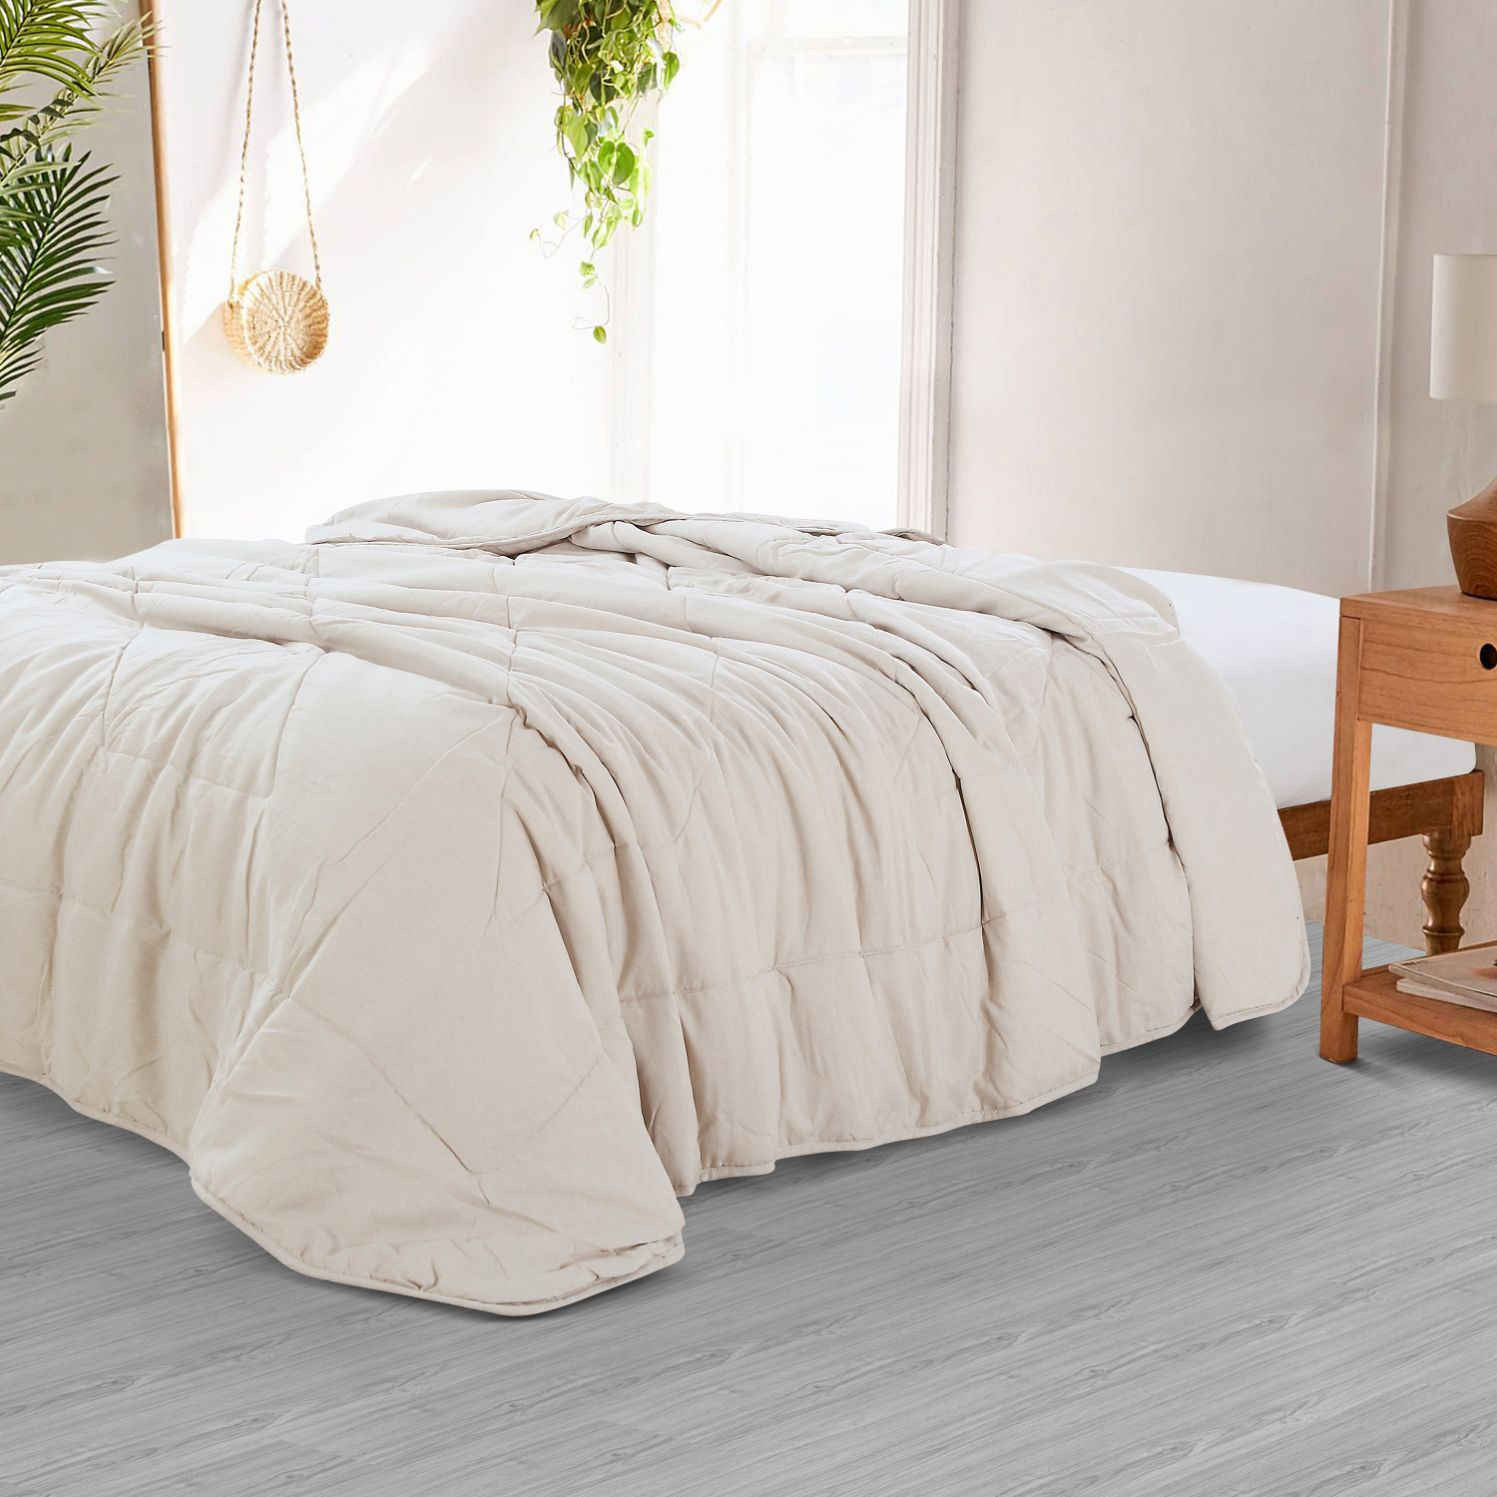 Countryside Summer AC Quilt - Beige